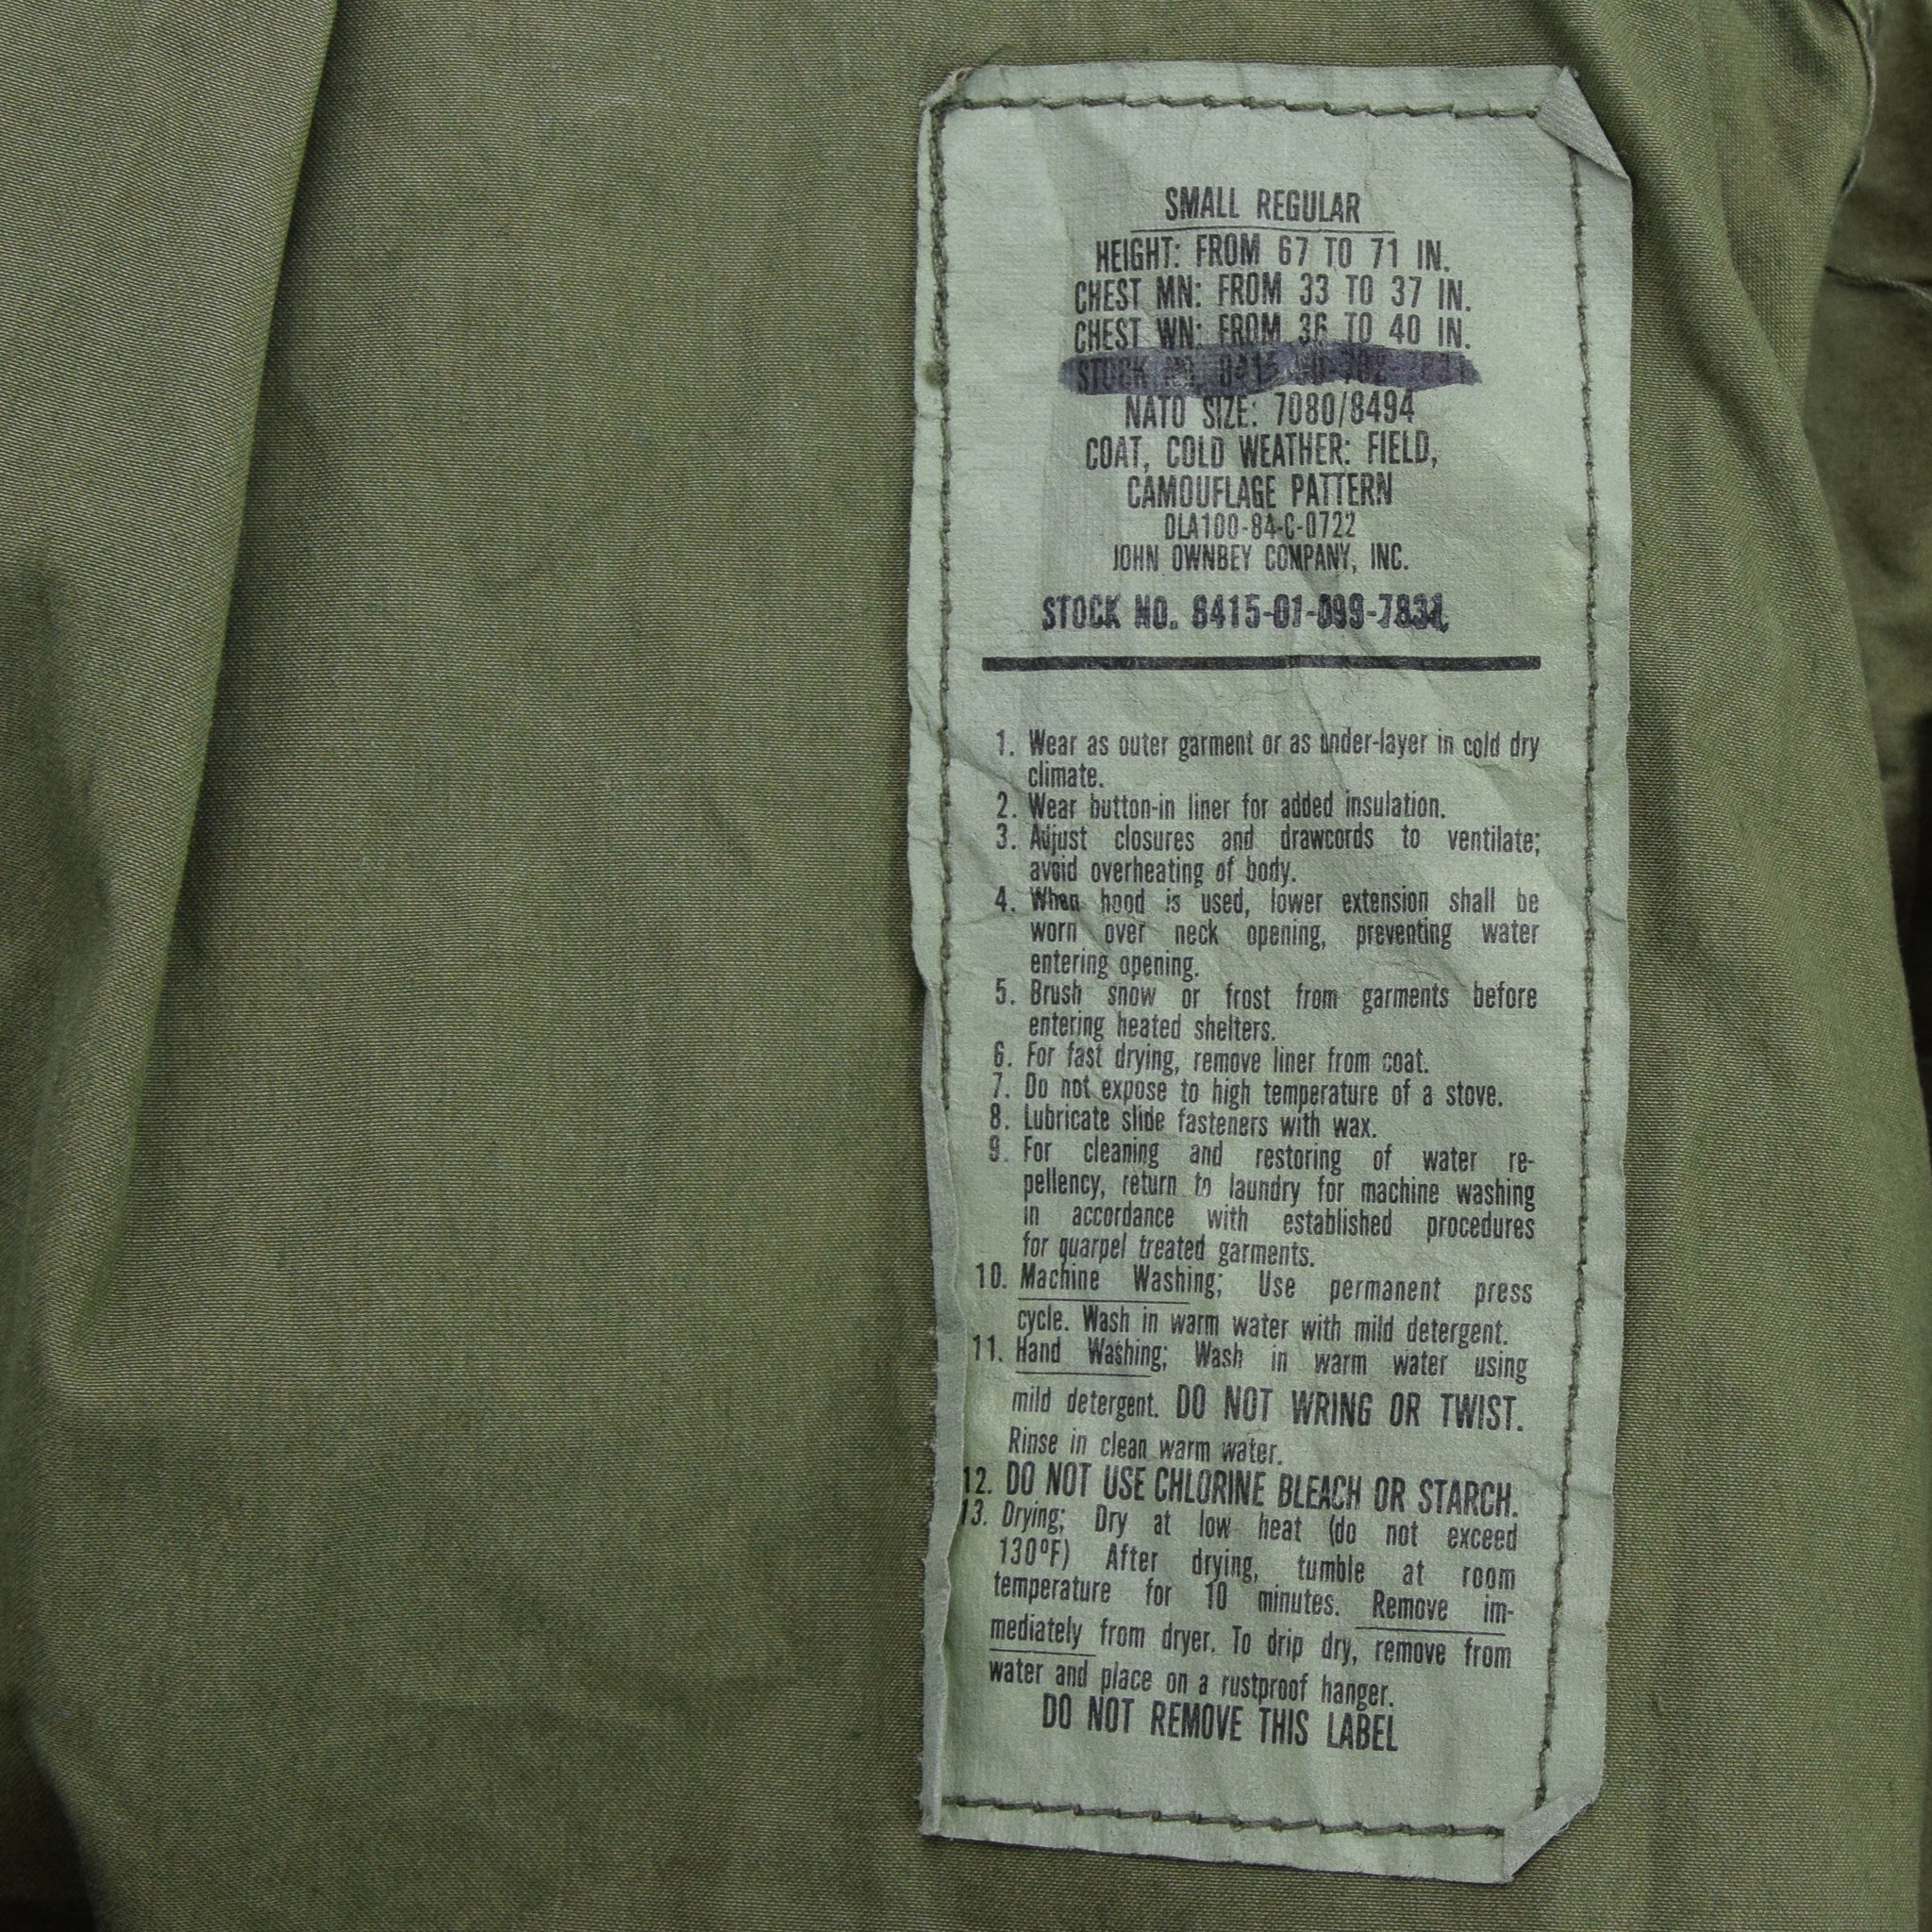 Vintage 80s M-65 Woodland Camouflage Field Coat USAF Cotton Military Jacket S label